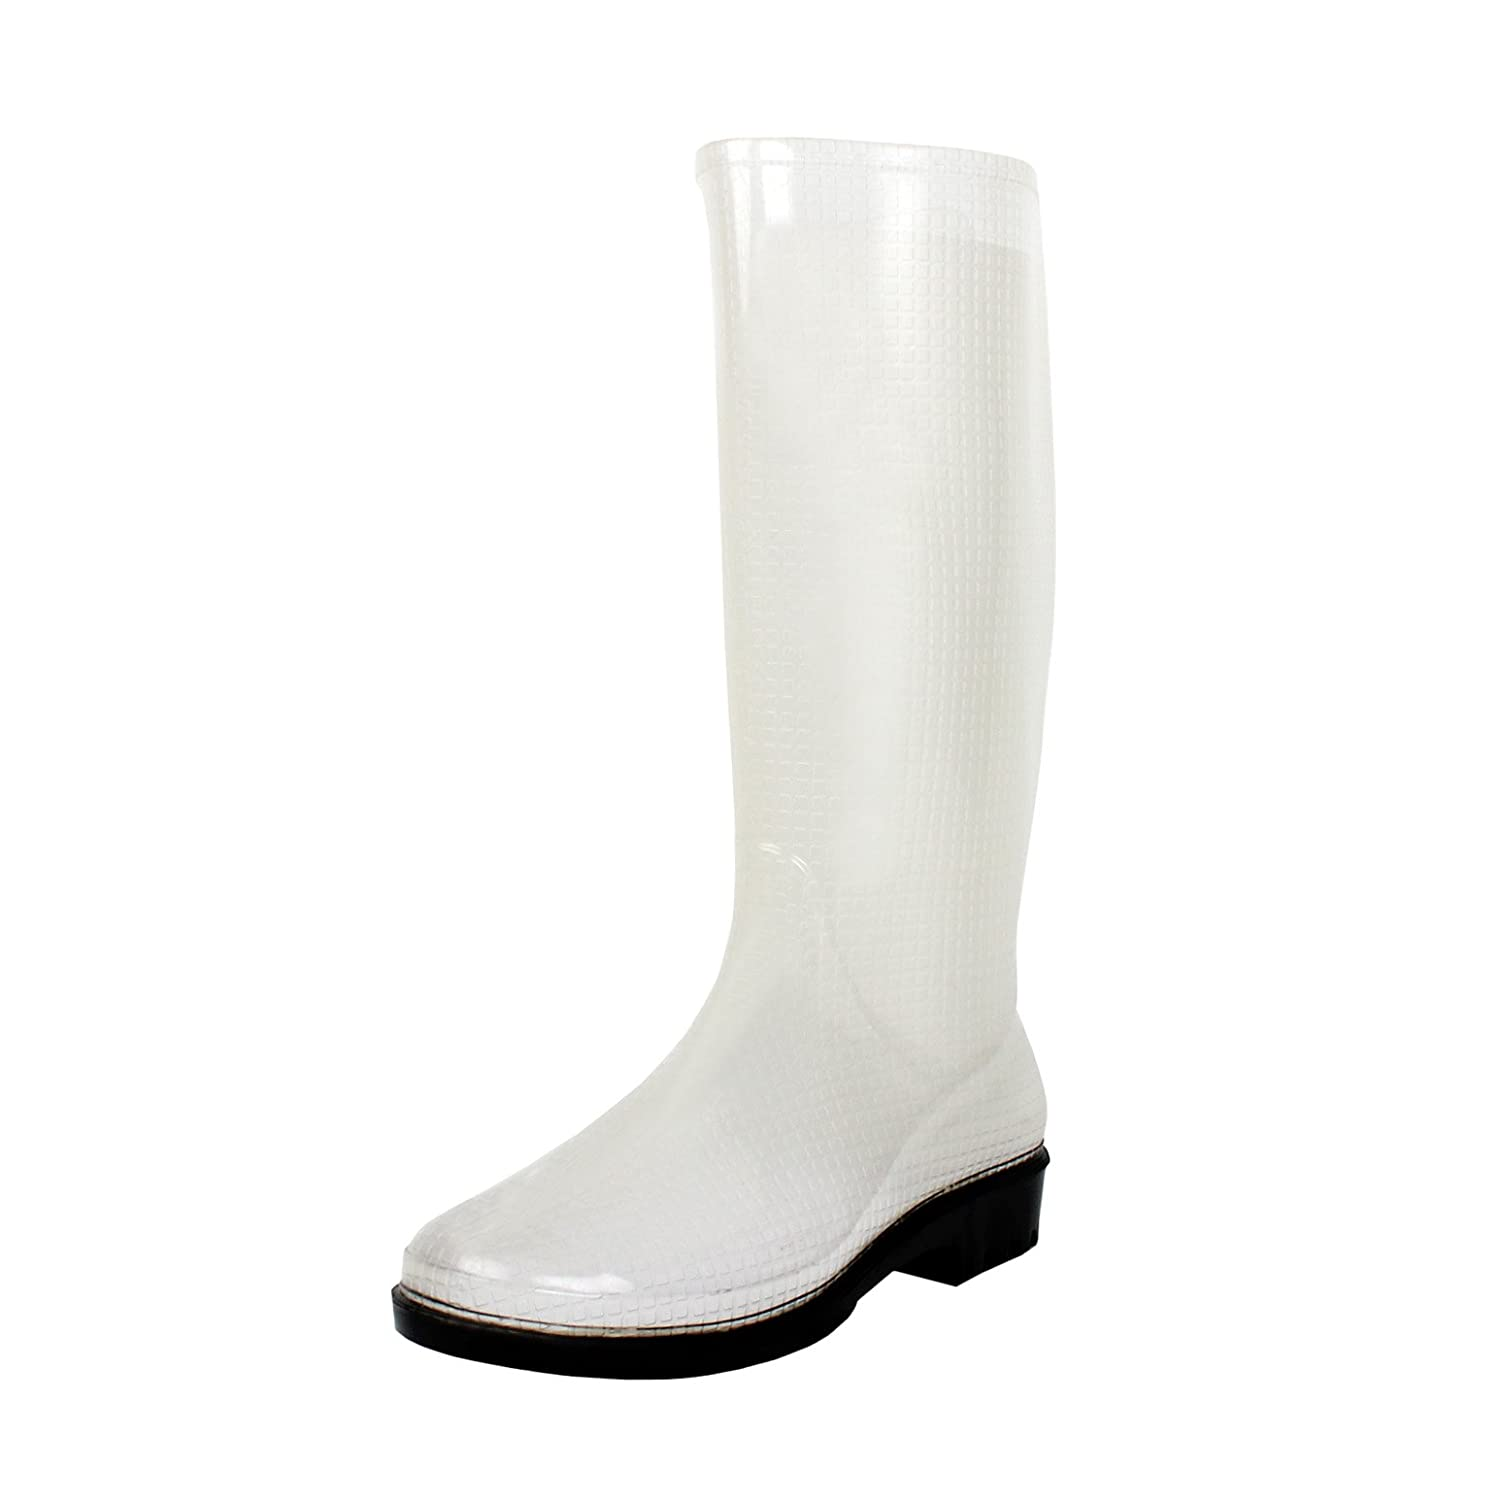 West Blvd Women's Mid Calf Waterproof Rainwear Rainboots B014ID1EMC Rainwear Waterproof df9fa1